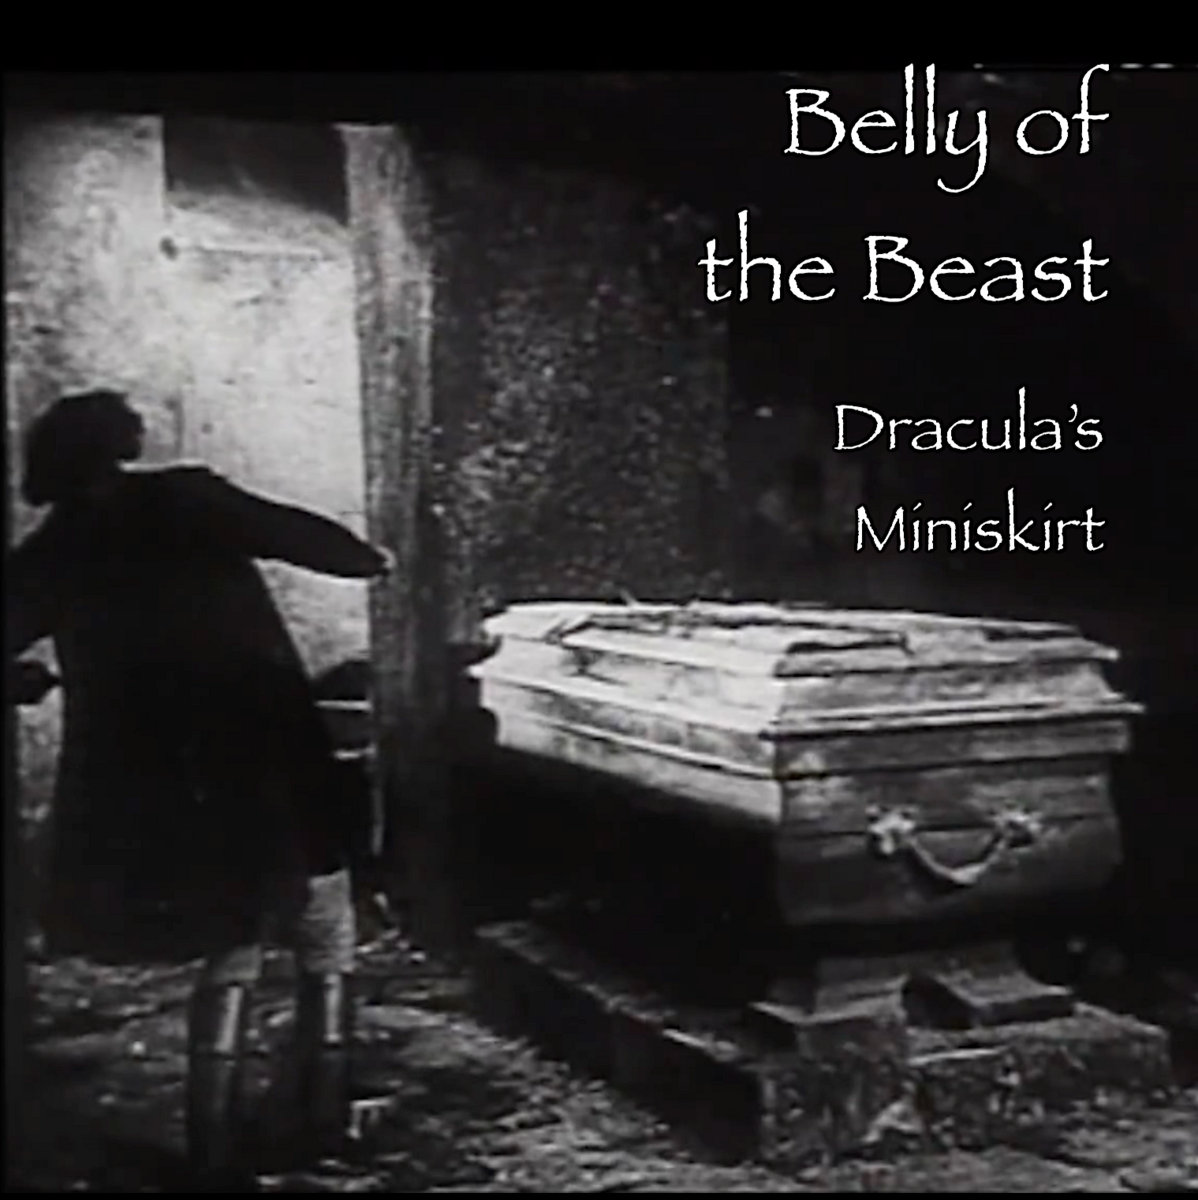 Belly of the Beast by Dracula's Miniskirt